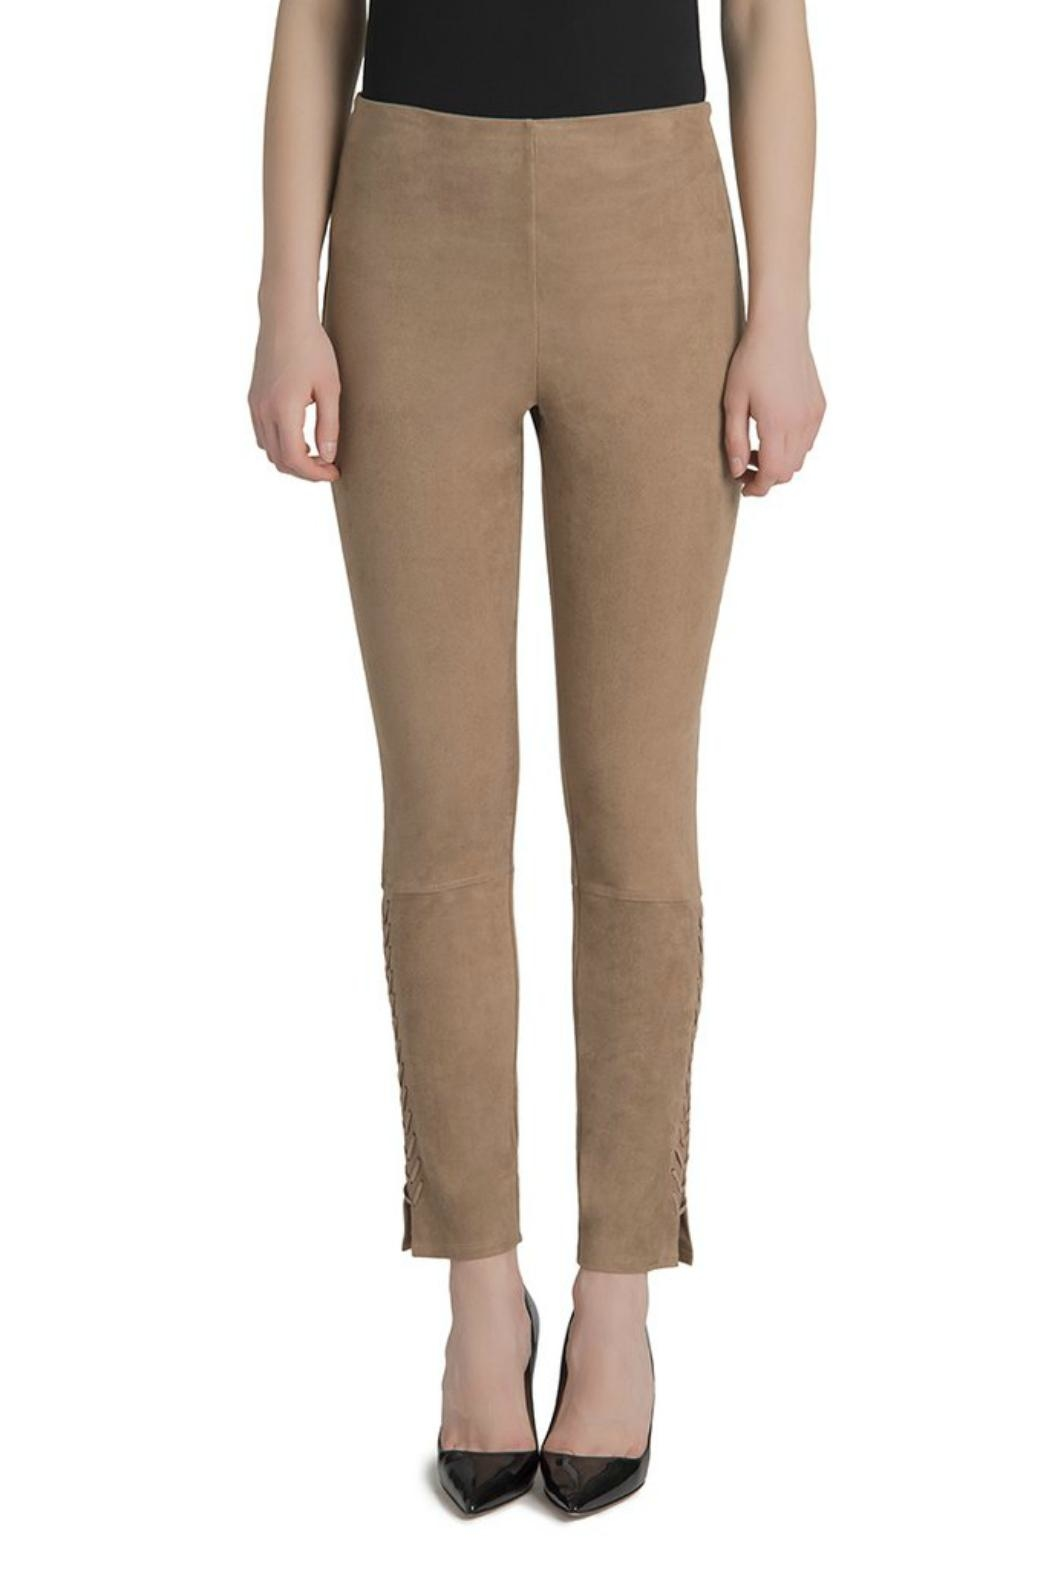 Lysse Mission Stitched Legging - Front Cropped Image